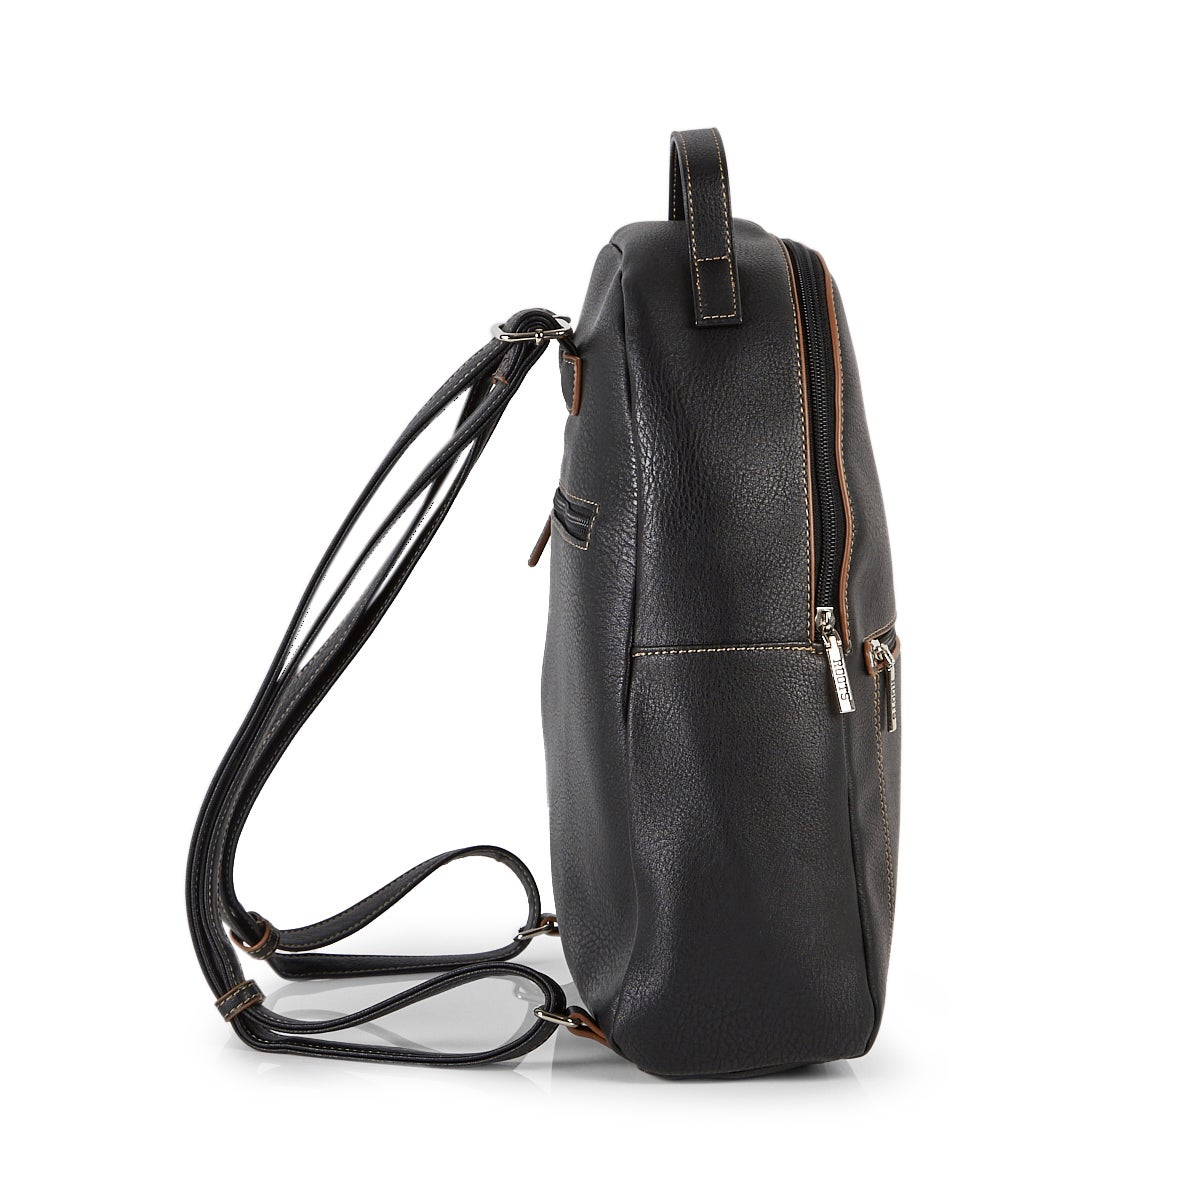 Lds Roots73 black painted edge backpack